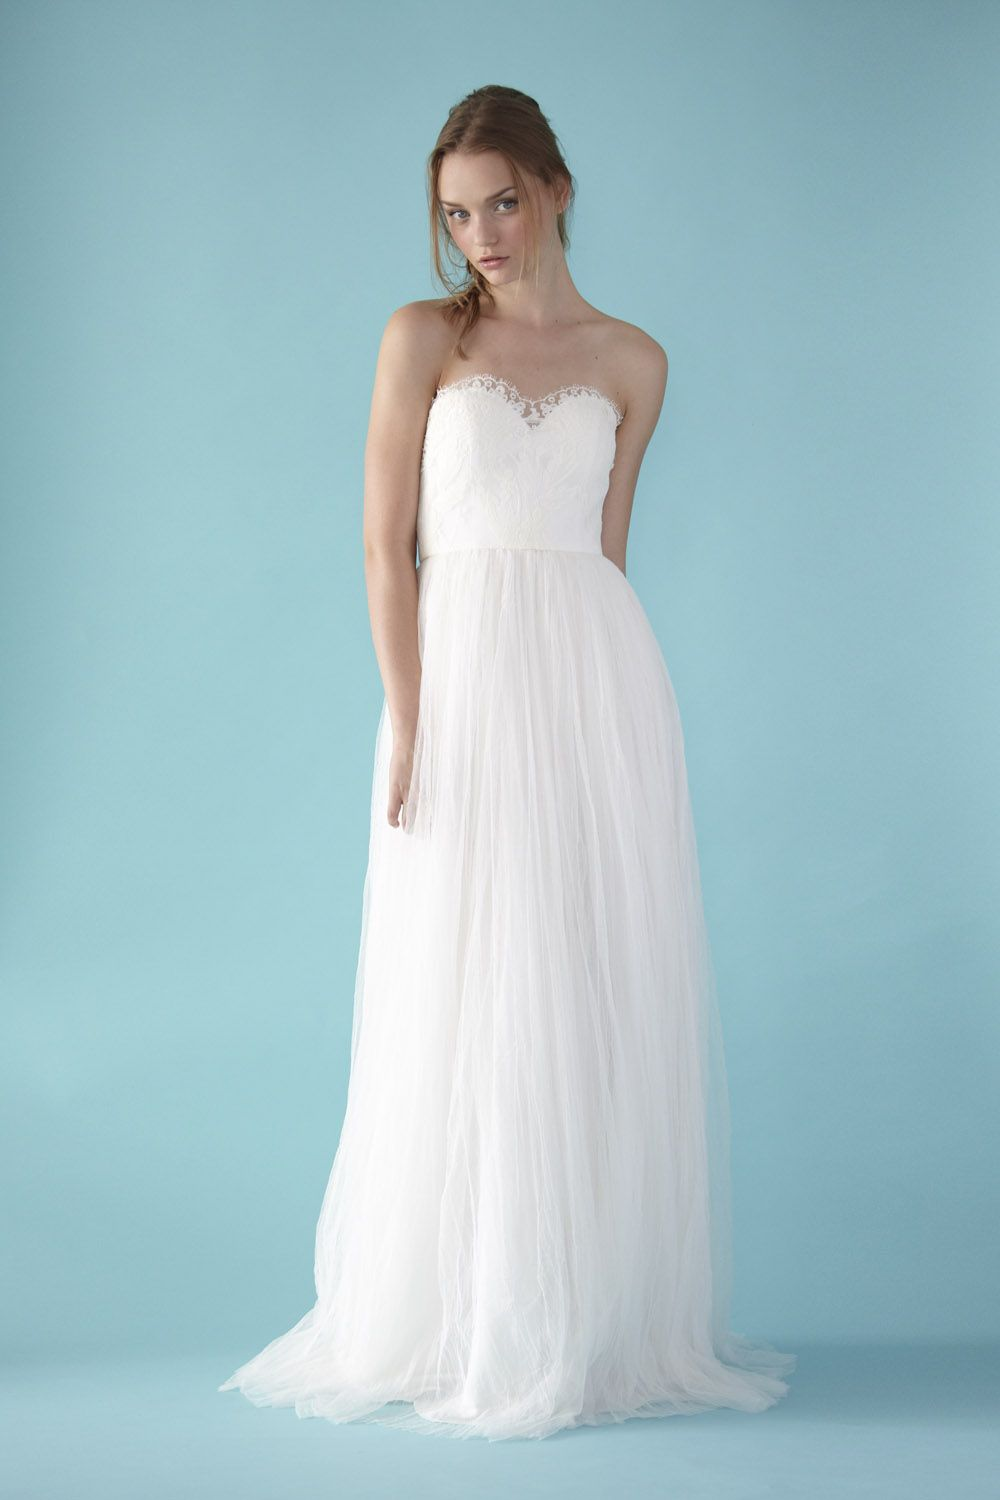 Love, Yu Calla from Effloresce collection | Love, Yu Gowns ...